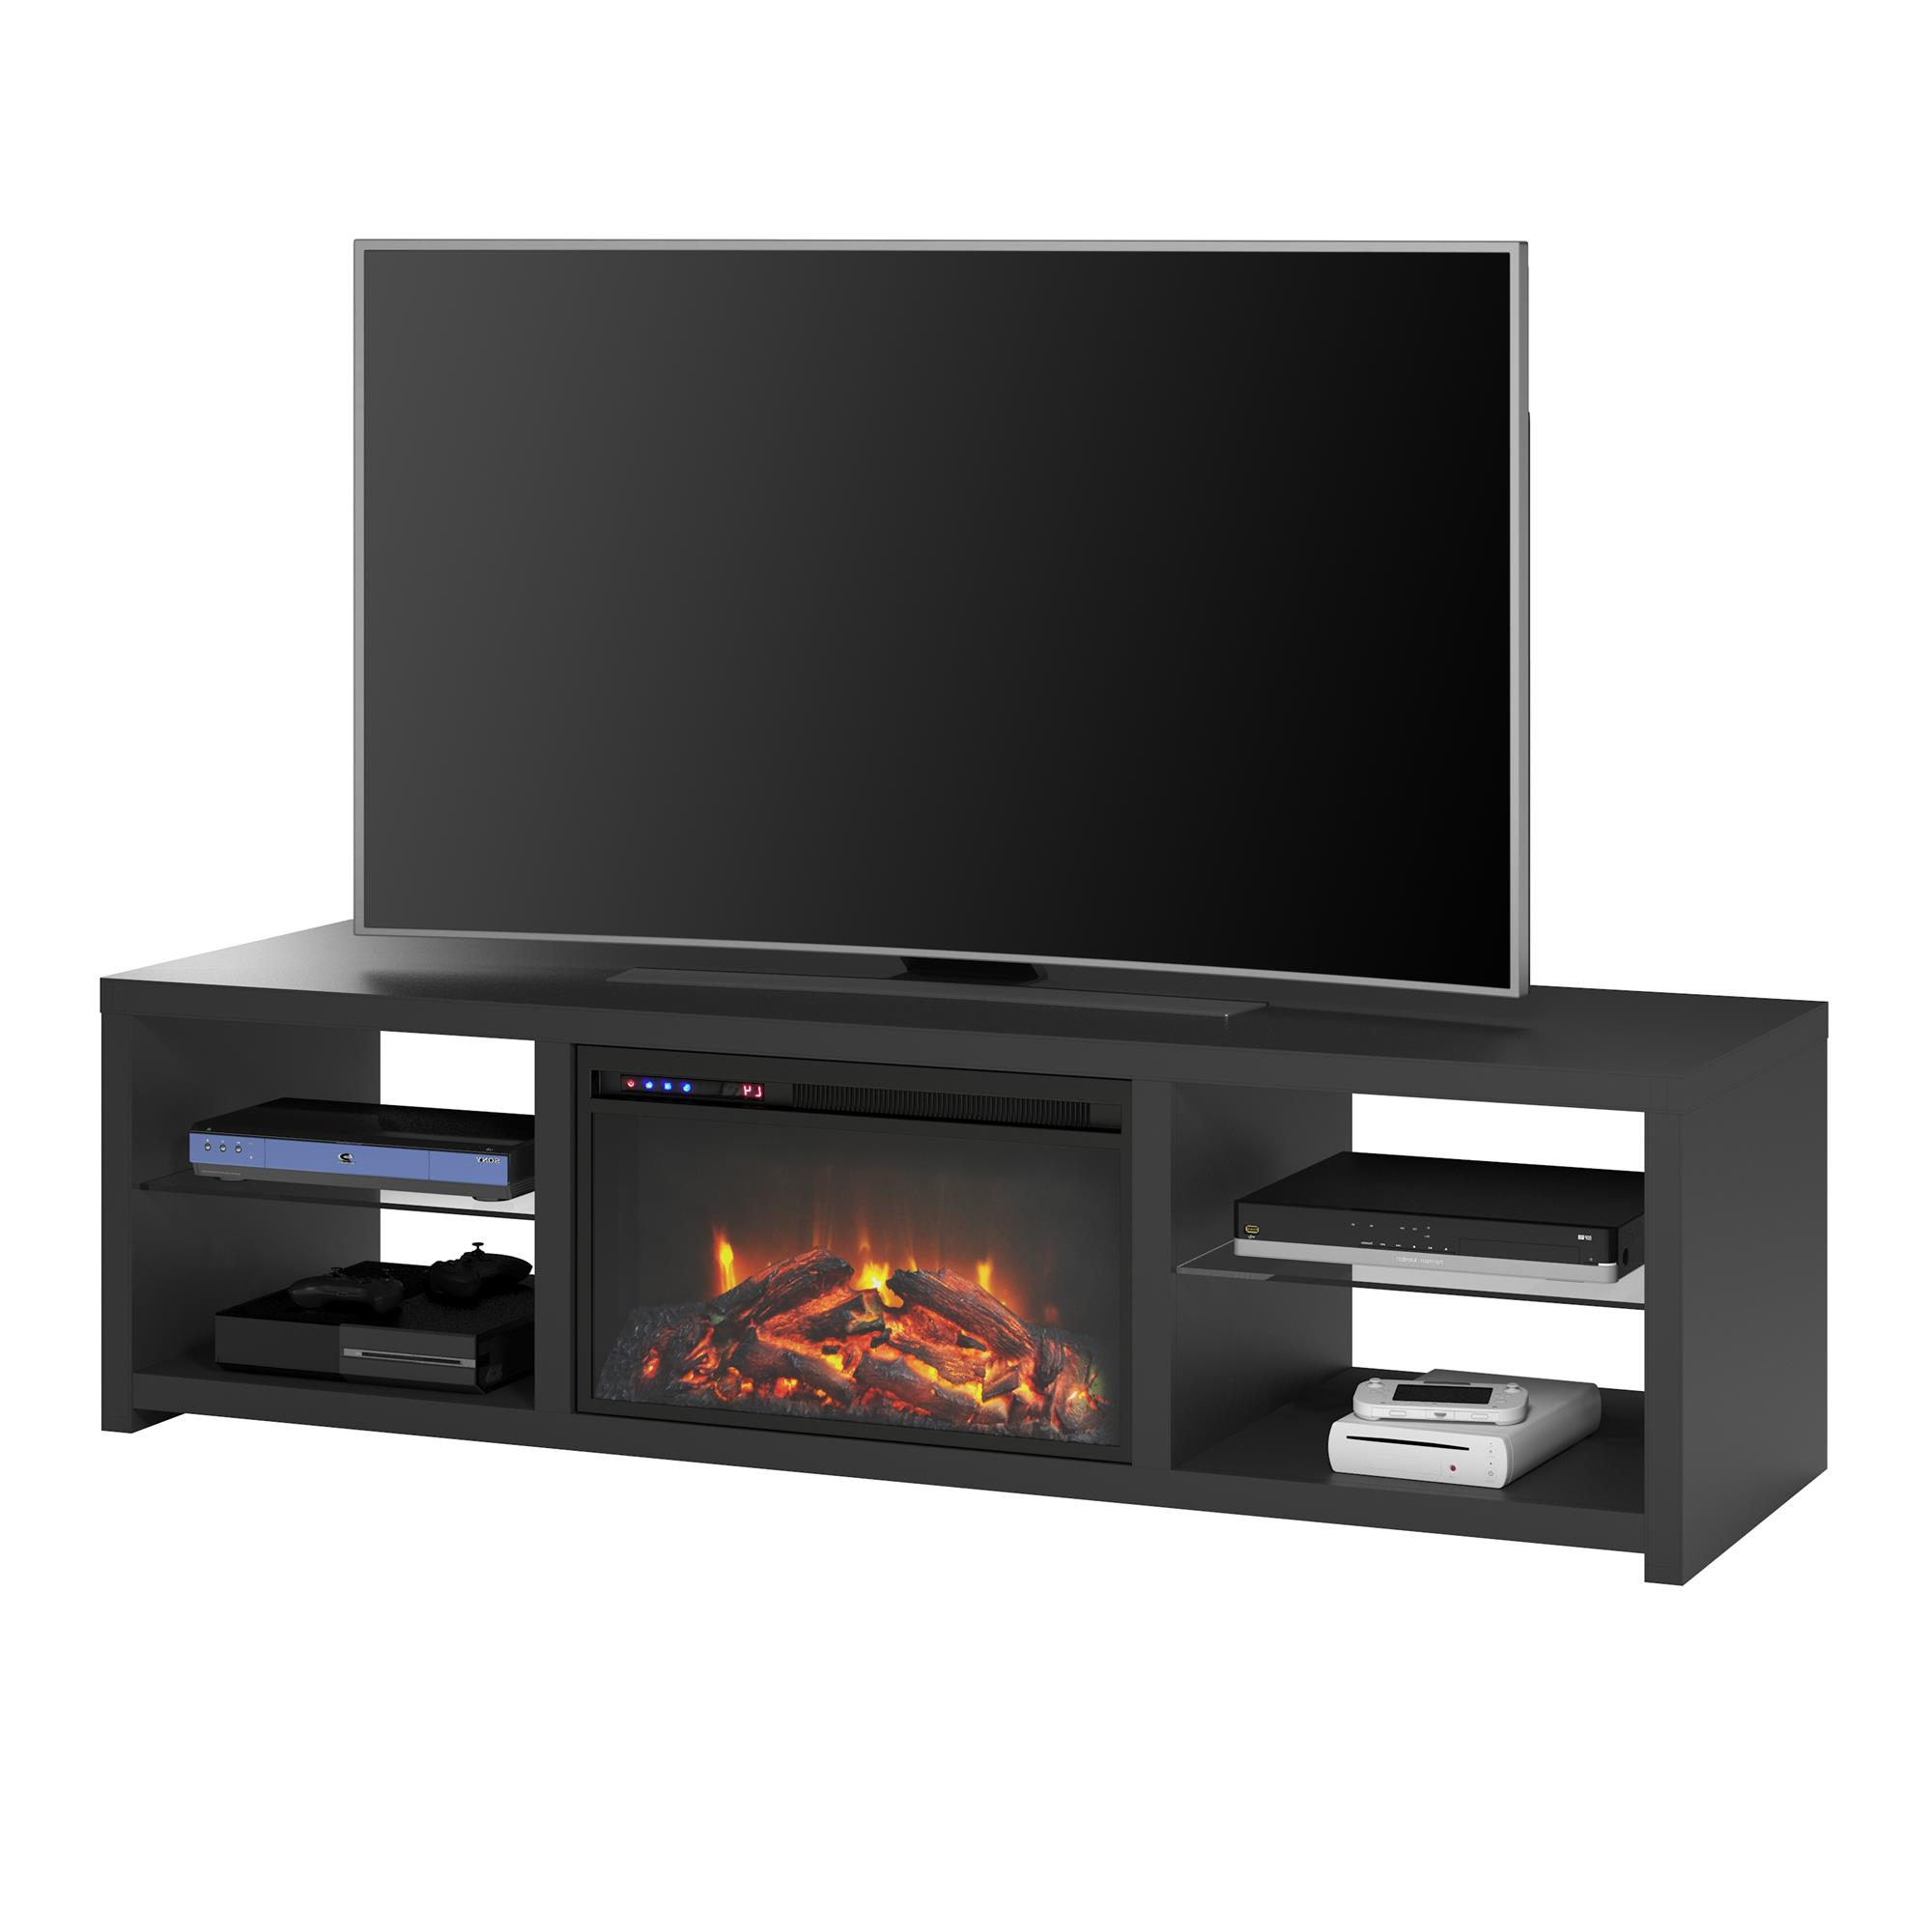 """Ameriwood Home Donovan Fireplace Tv Stand For Tvs Up To 70 Pertaining To Mainor Tv Stands For Tvs Up To 70"""" (View 17 of 20)"""